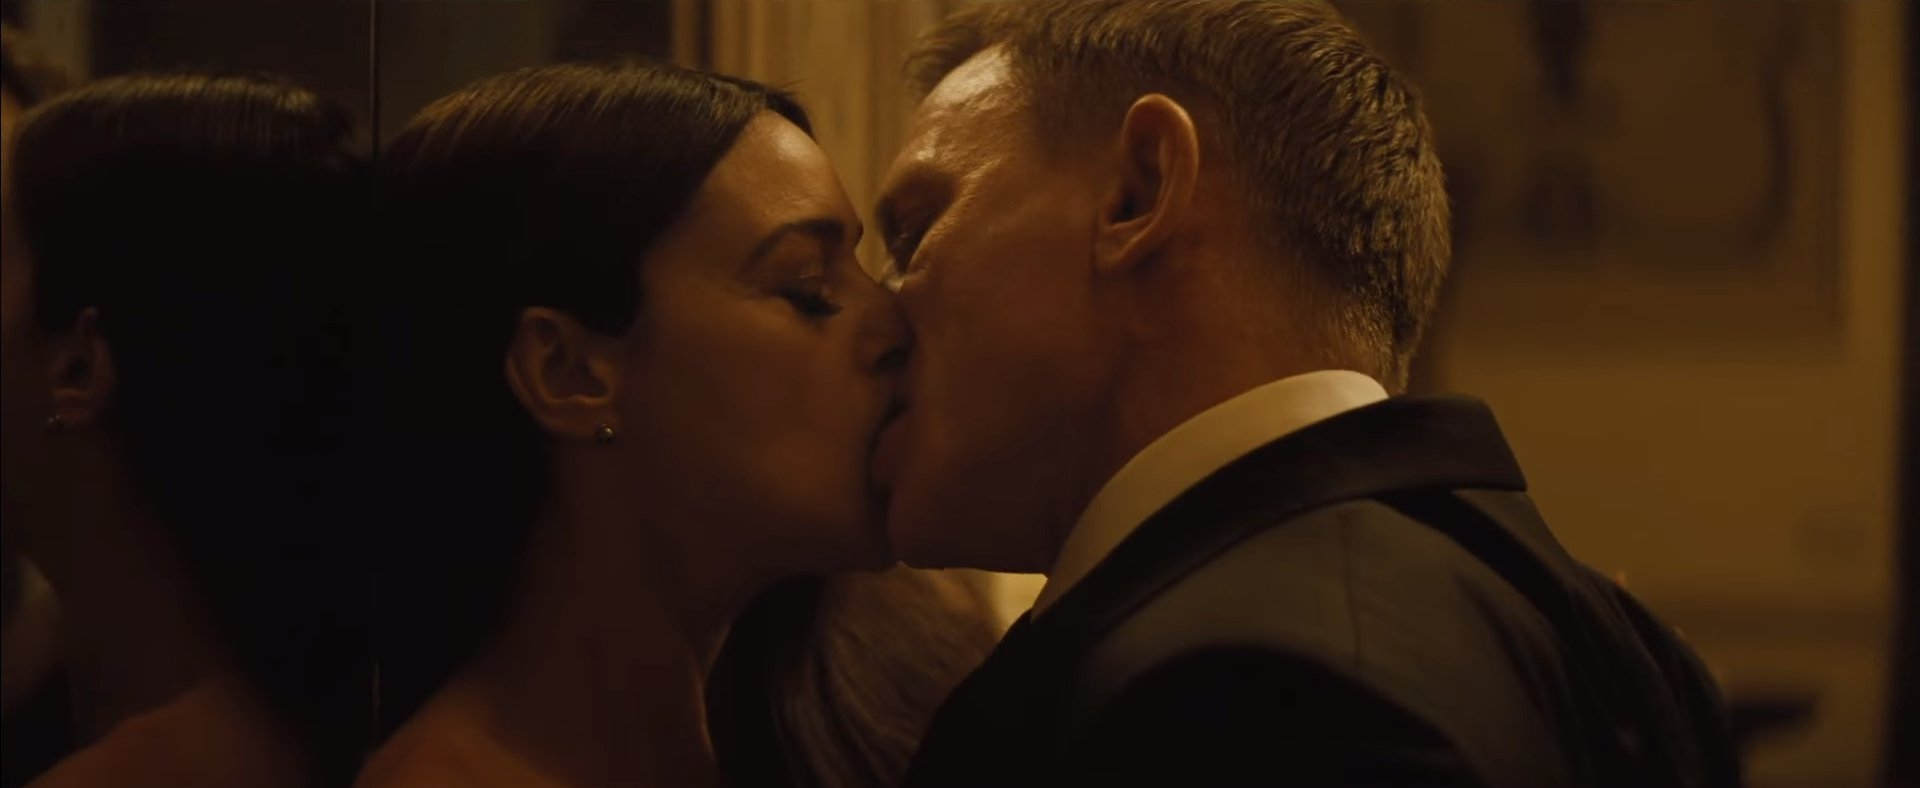 Spectre Kissing Scenes Banned In India Spark Memes The Independent